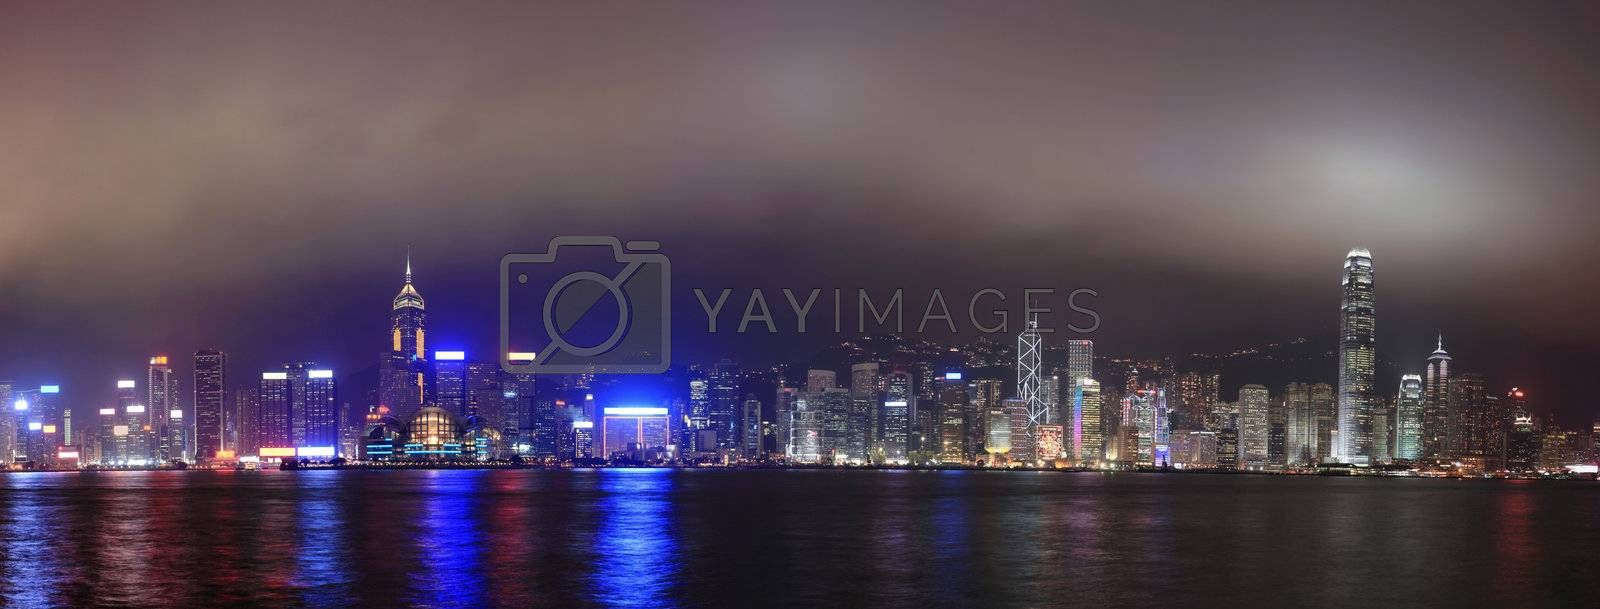 Royalty free image of Panorama of the skyline of Hong Kong at night, with mist by leungchopan